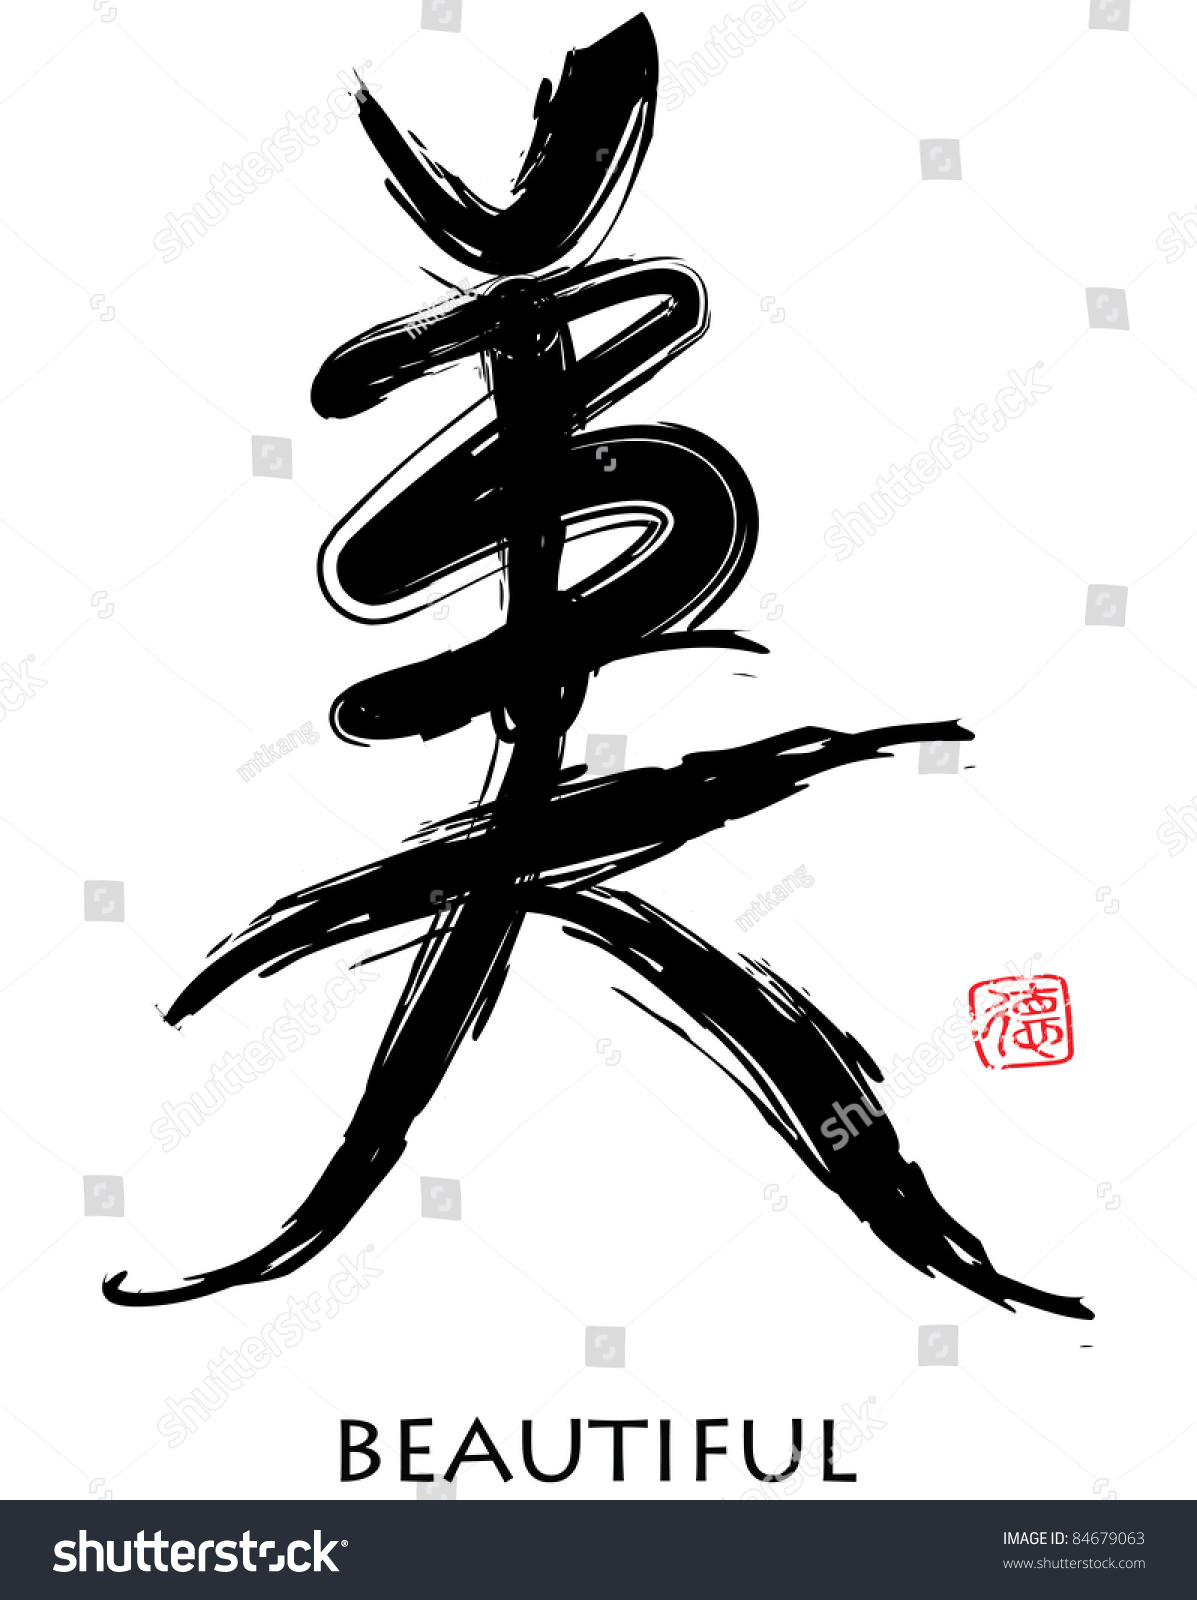 Chinese Characters In Calligraphy Style Means Beautiful Ez Canvas